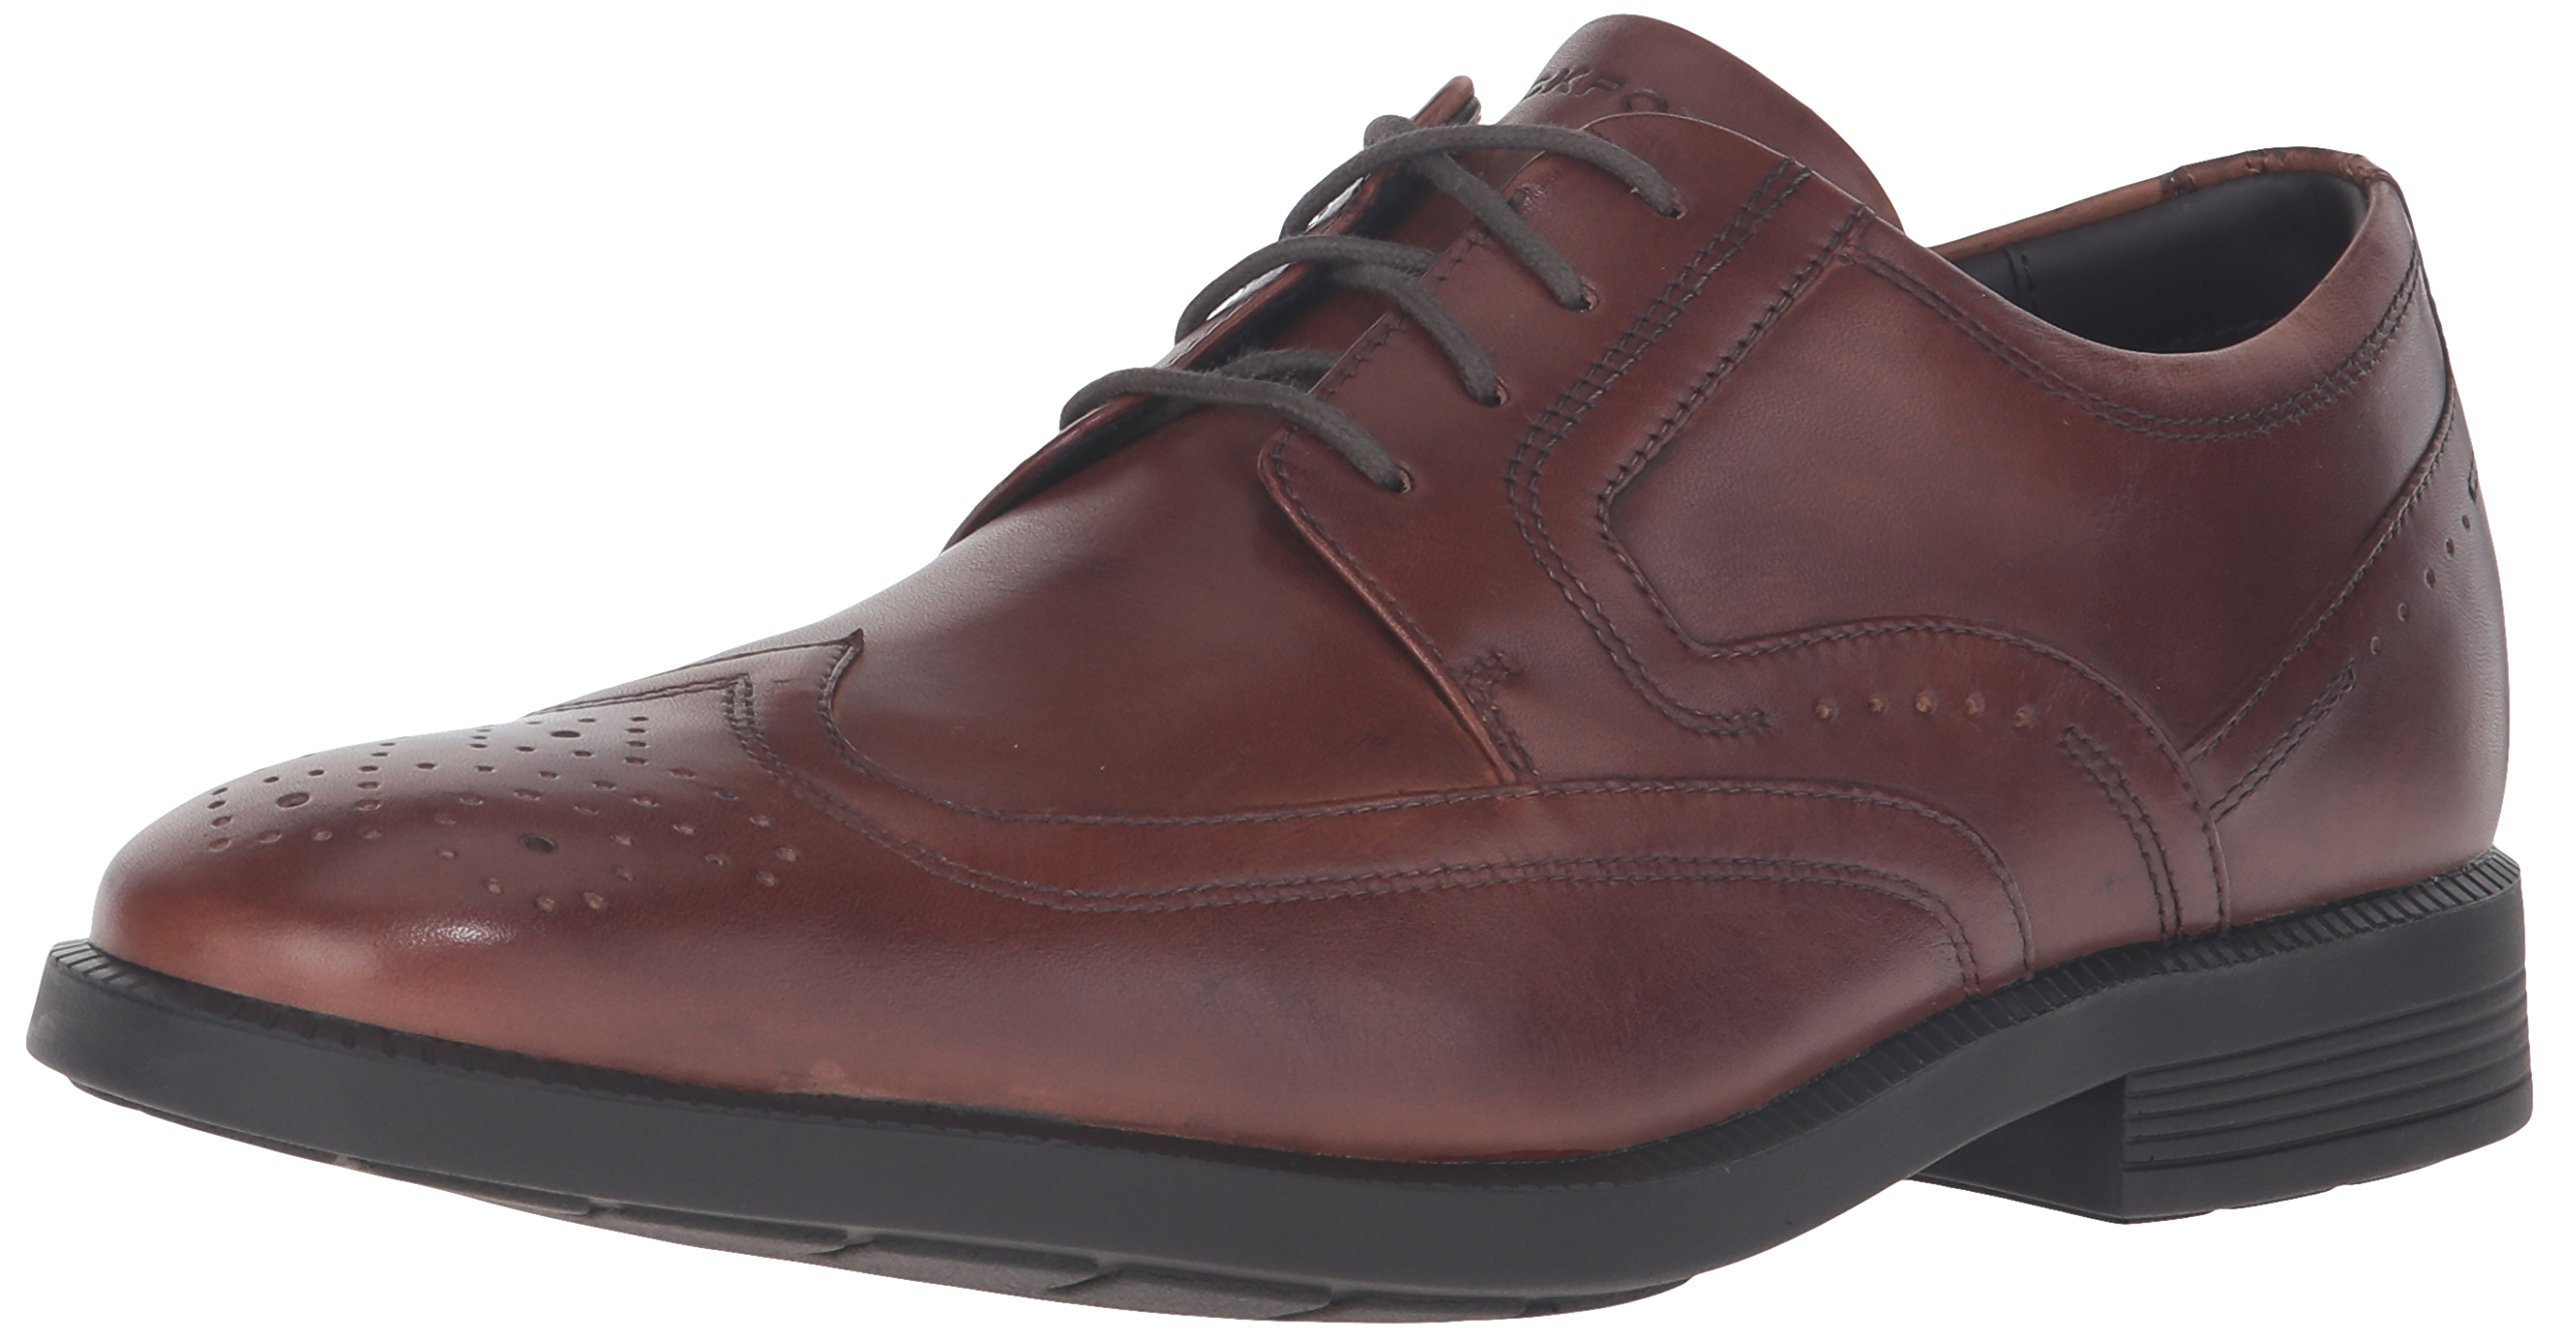 Rockport Men's Dressports Business Wing Tip Shoe, New Brown, 13 W US